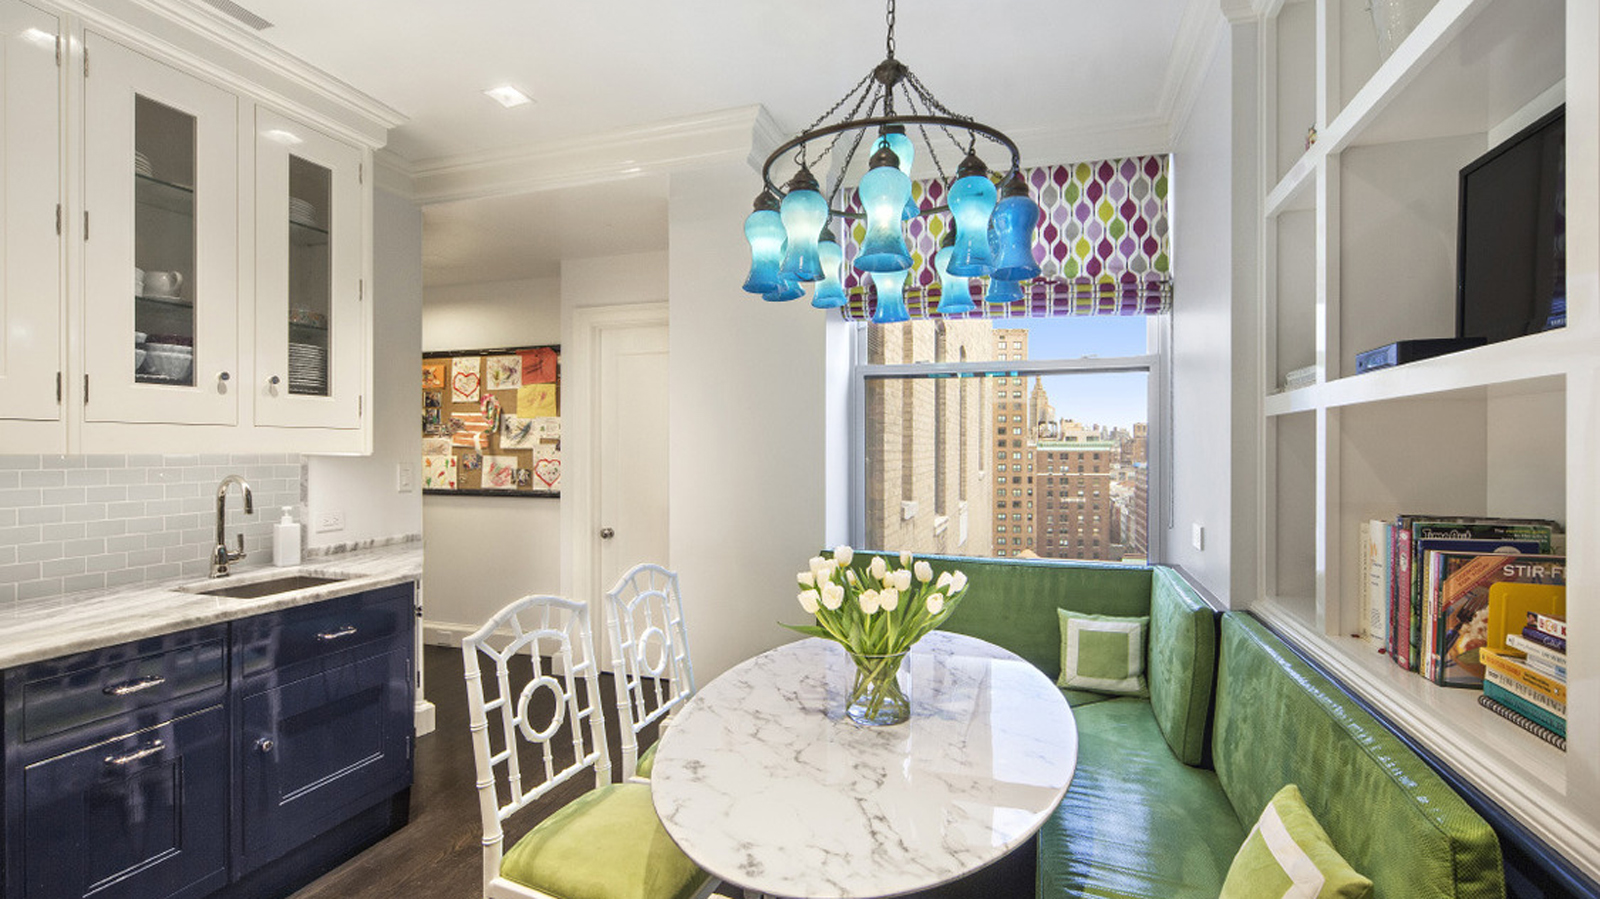 Breakfast nook with lime green seating and a light blue chandelier facing dark blue kitchen cabinets. MEP designed by 2L Engineering.